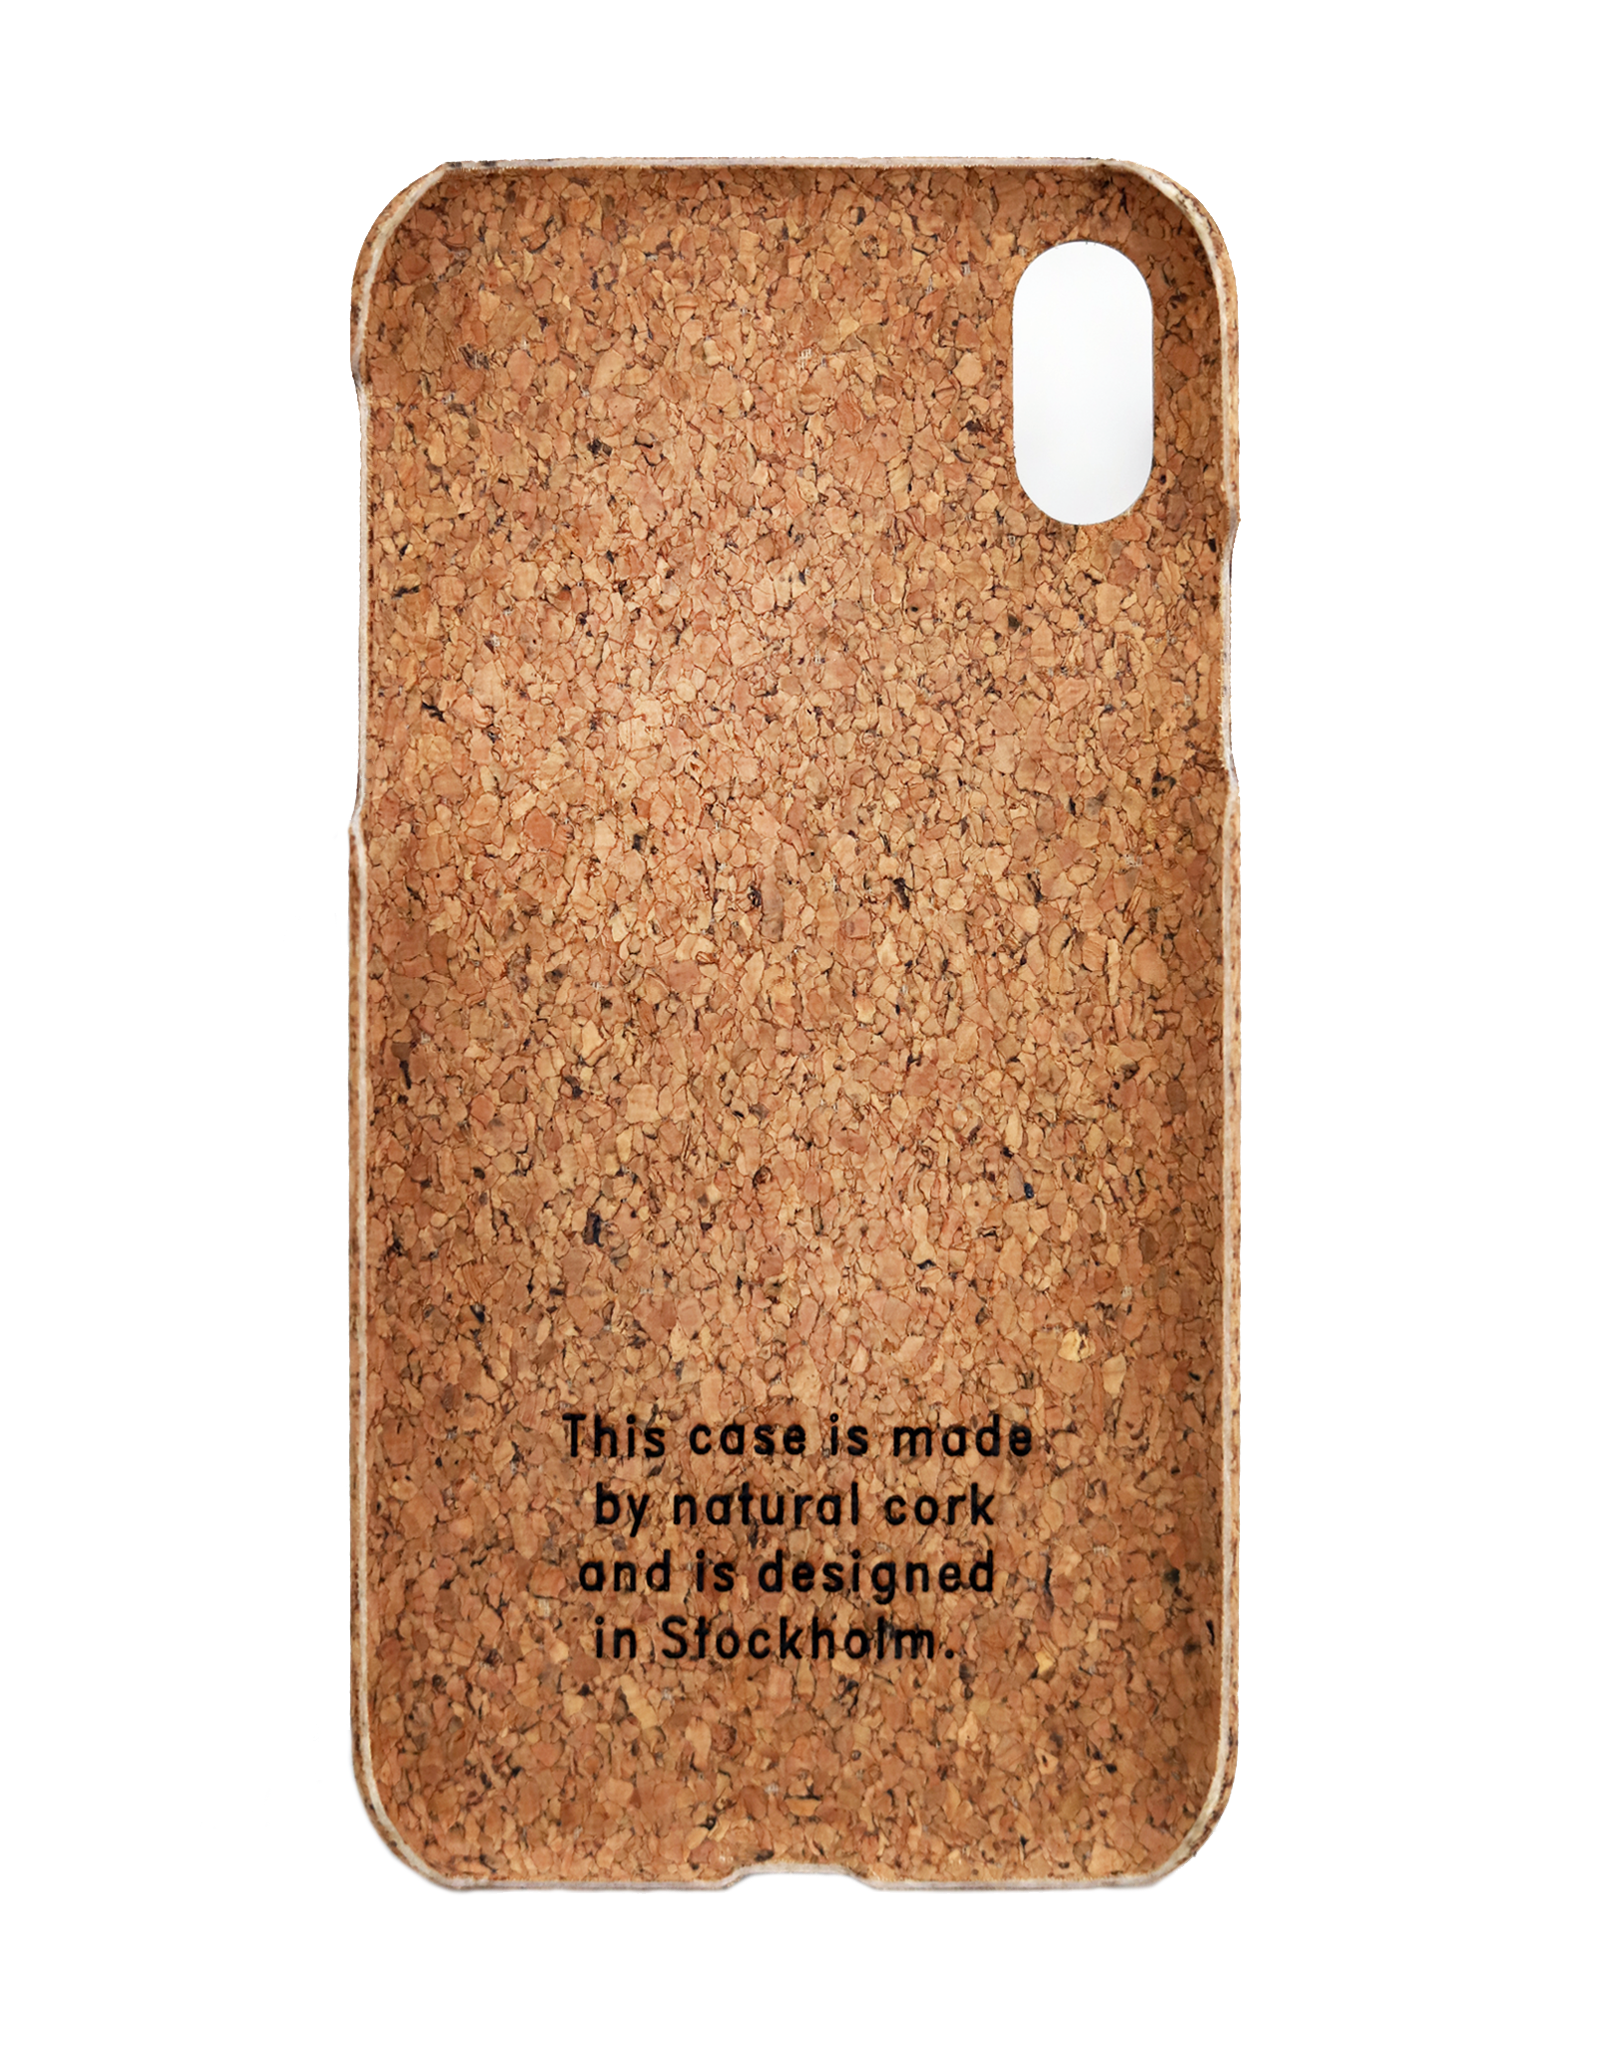 iPhone XR Cork Cover - Debonair